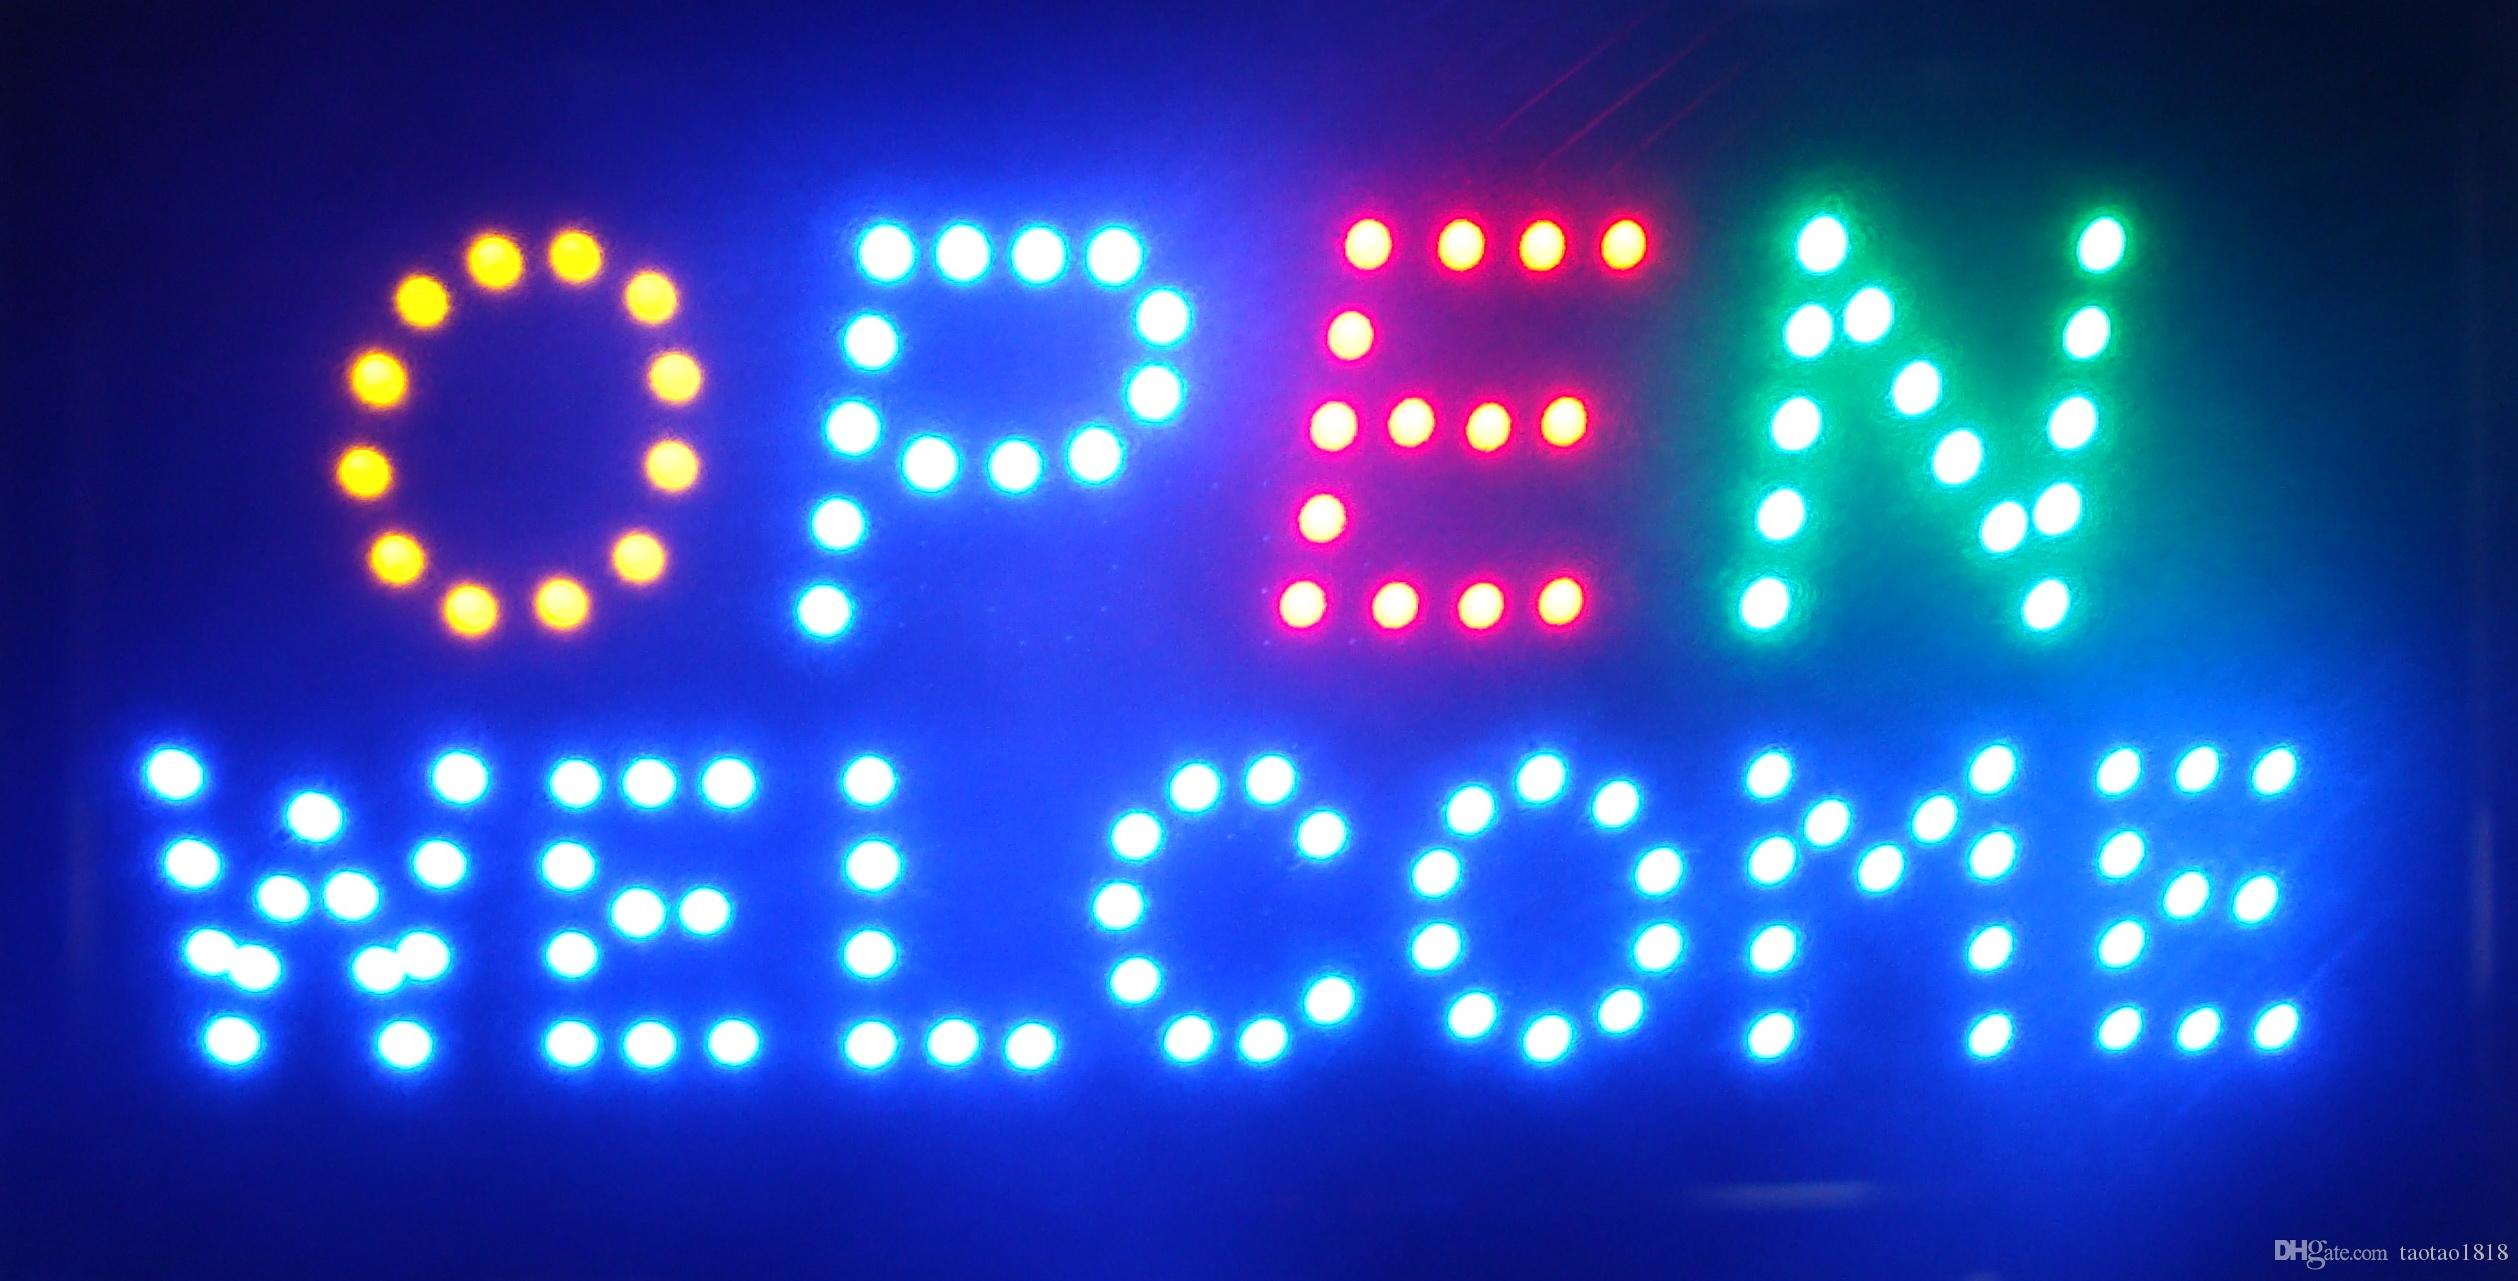 8f80d4421 2019 Open Welcom Led Neon For Business Neon Welcome Open Sign ...